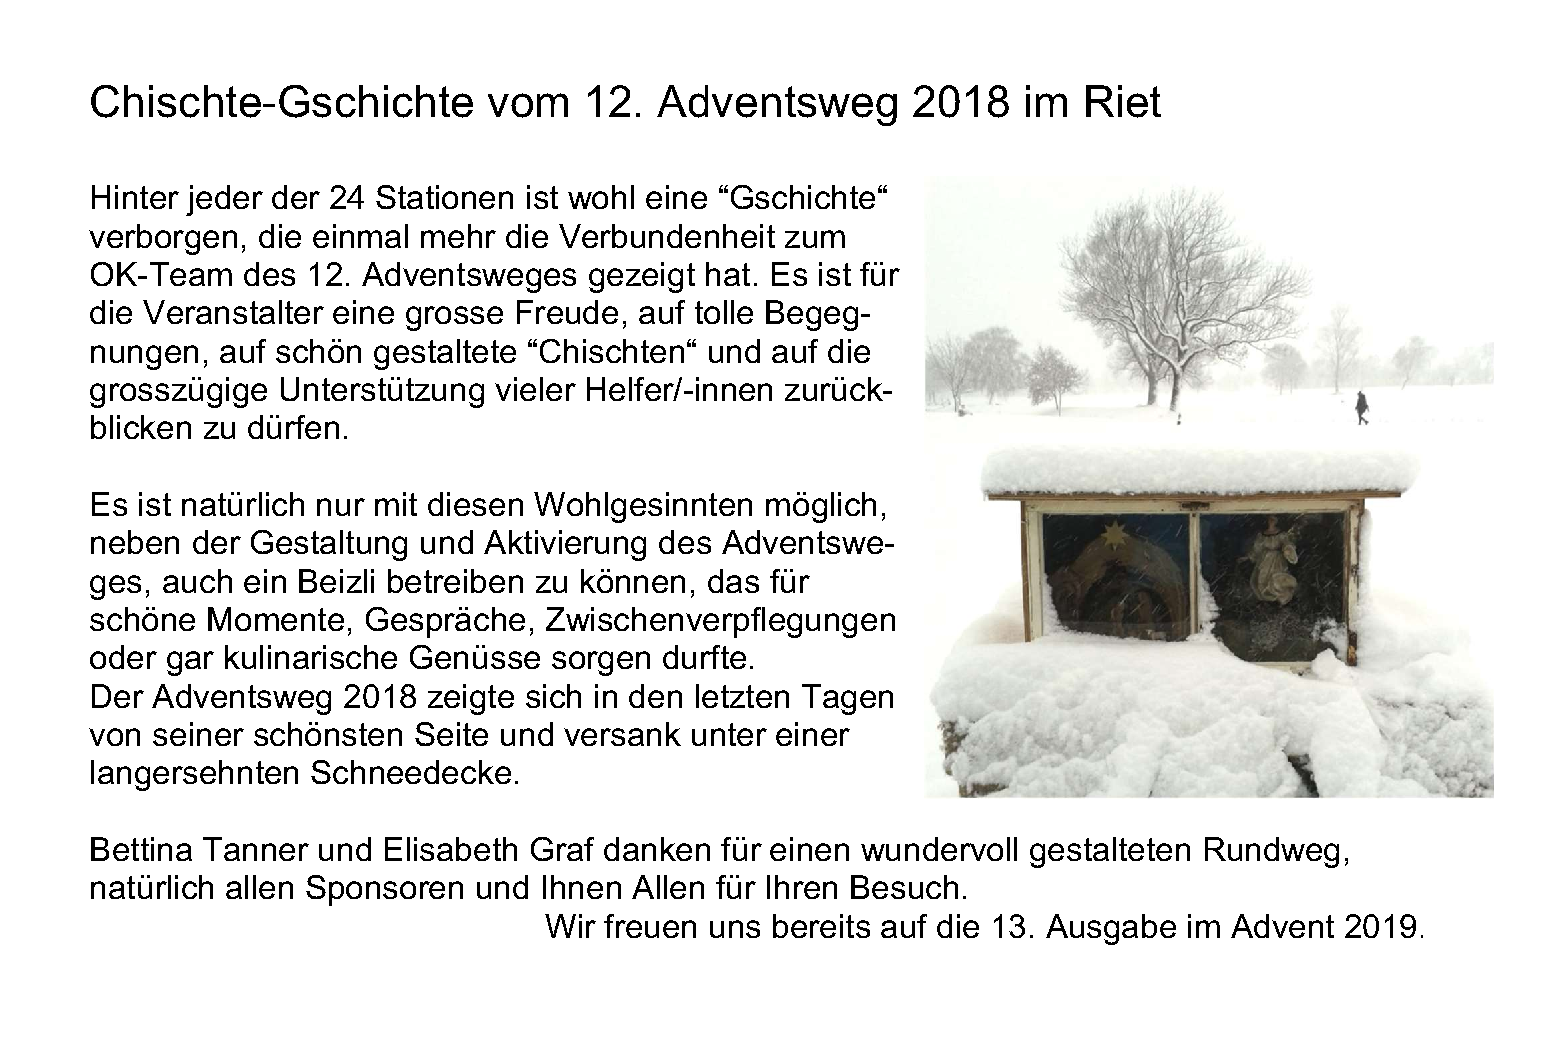 2019-01 Adventsweg Nachlese2018png